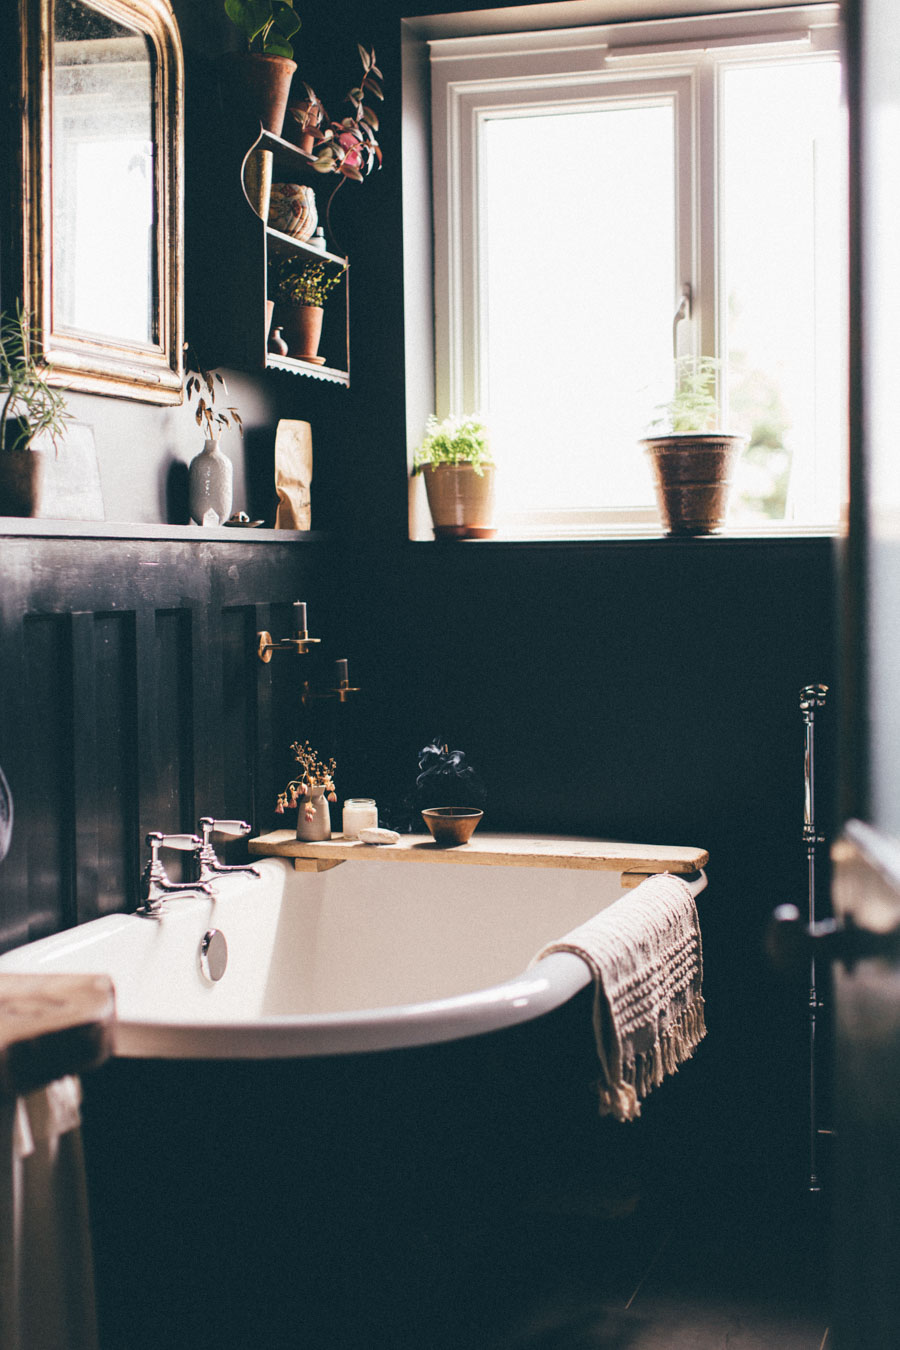 creating a moody and tranquil bathroom